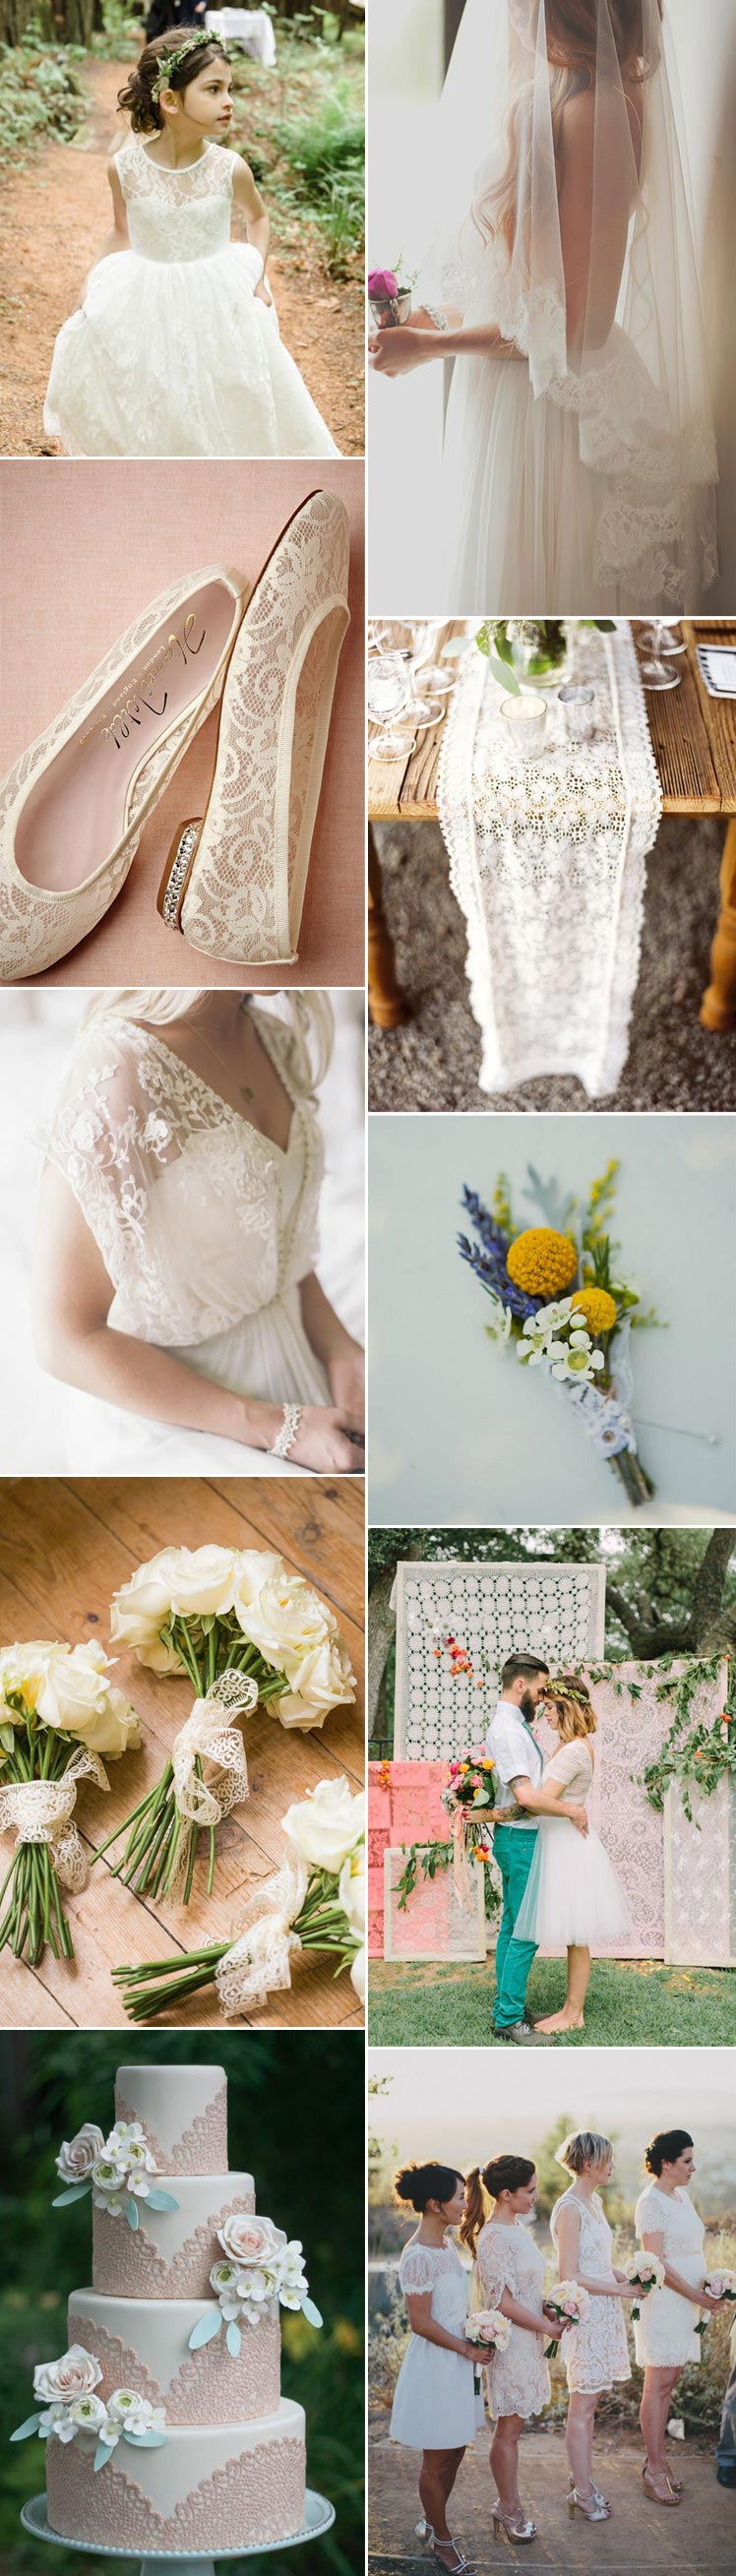 explore lace for the most beautiful wedding day ideas